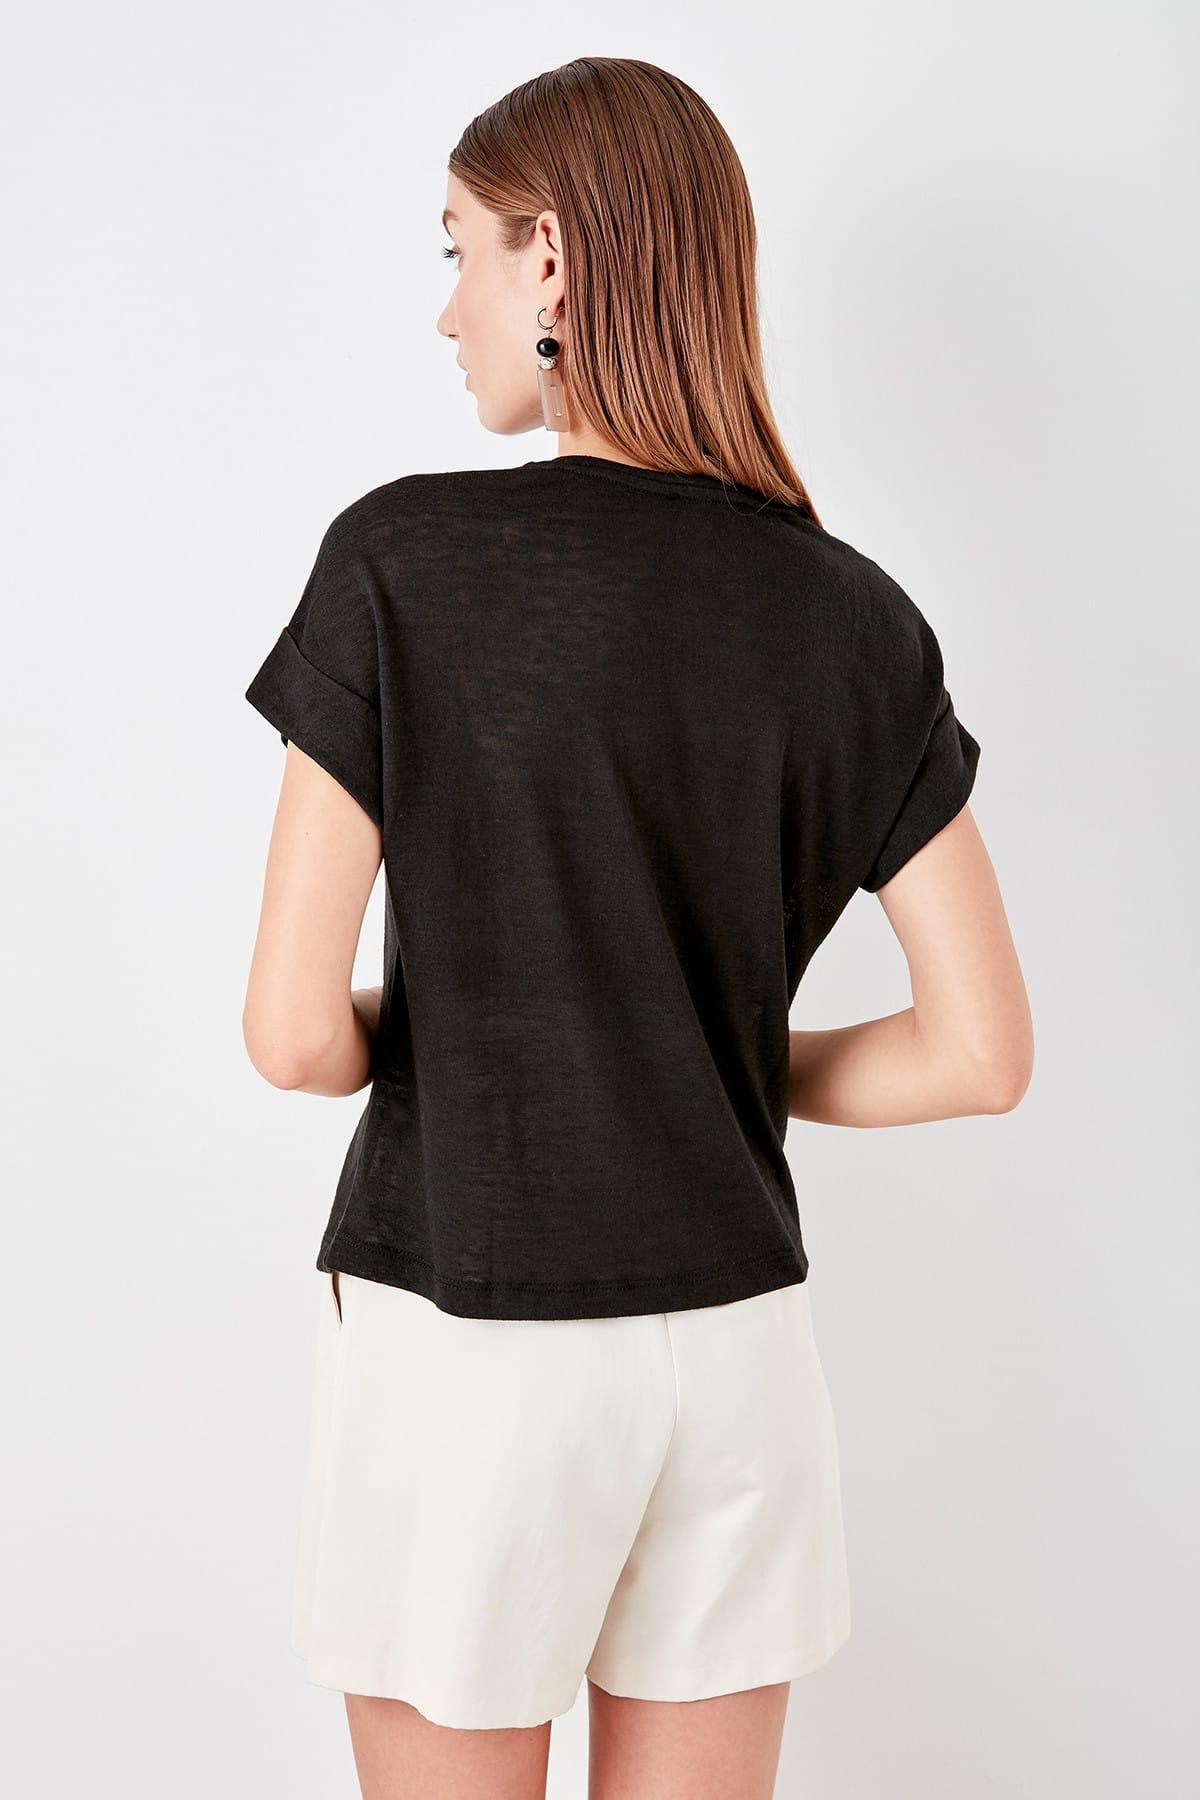 Black Pocket Detail Knitted T Shirt - emuuz.com